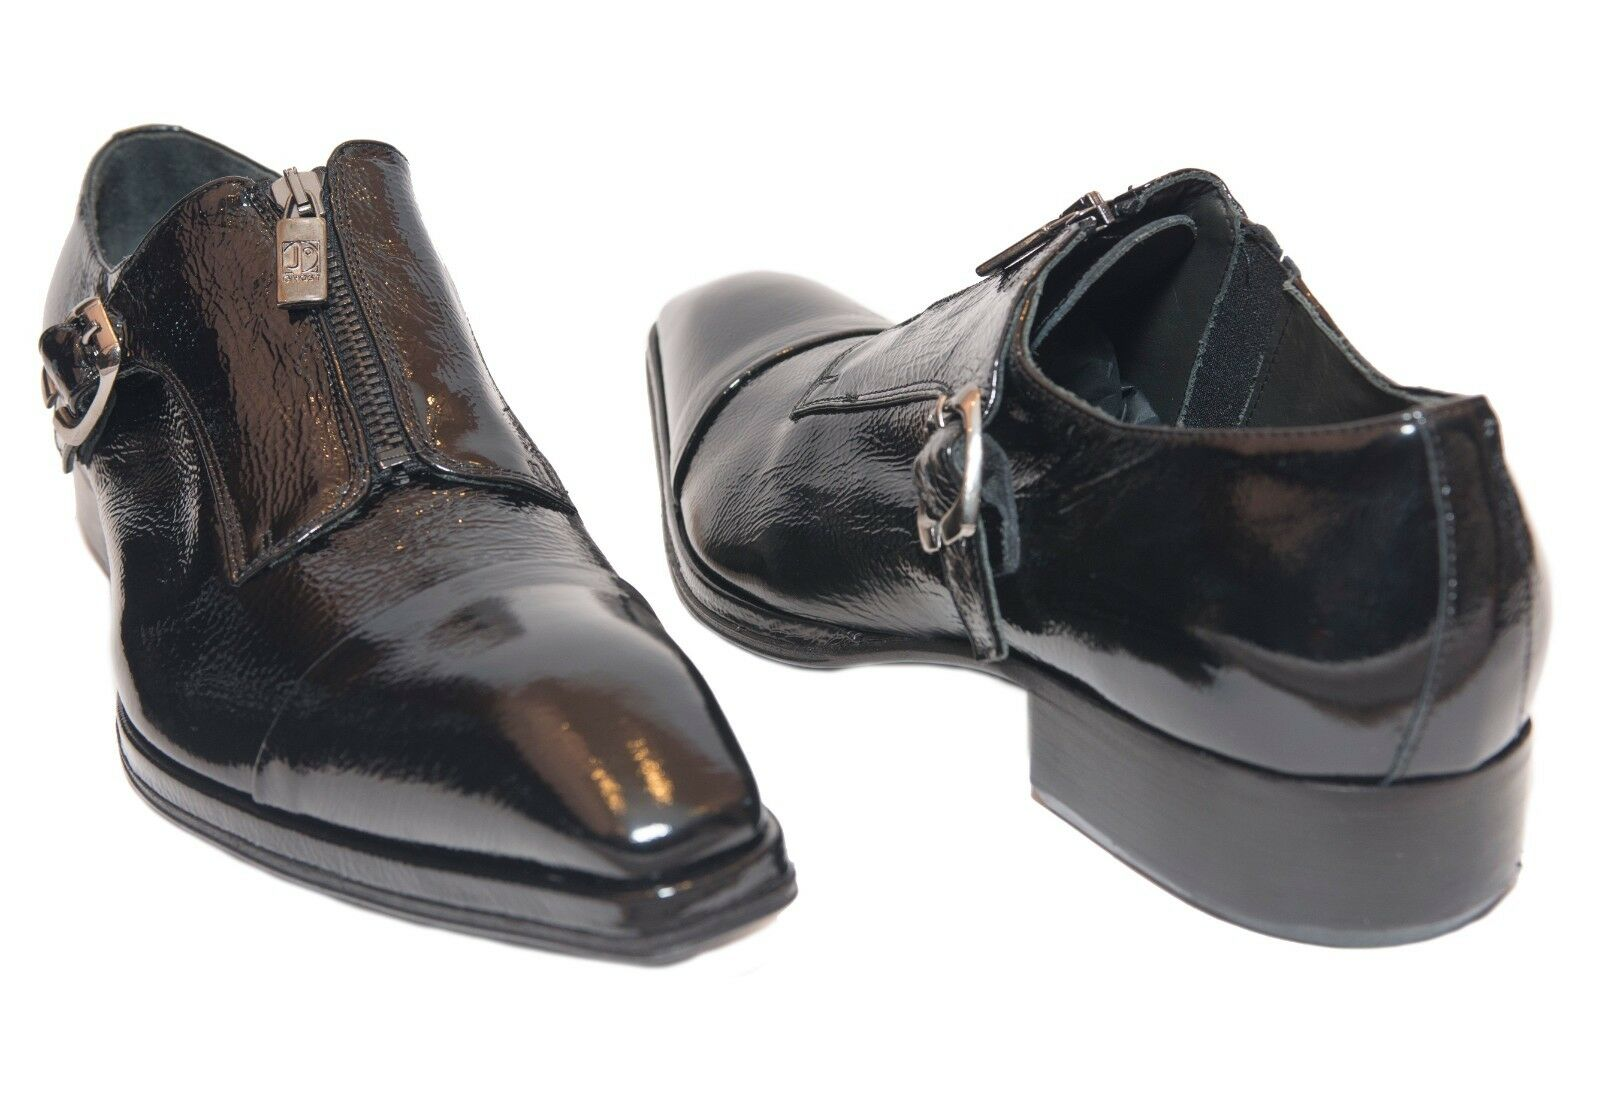 Jo Ghost 1316 Italian Italian Italian mens nero patent leather scarpe with zipper in a front , b e15713